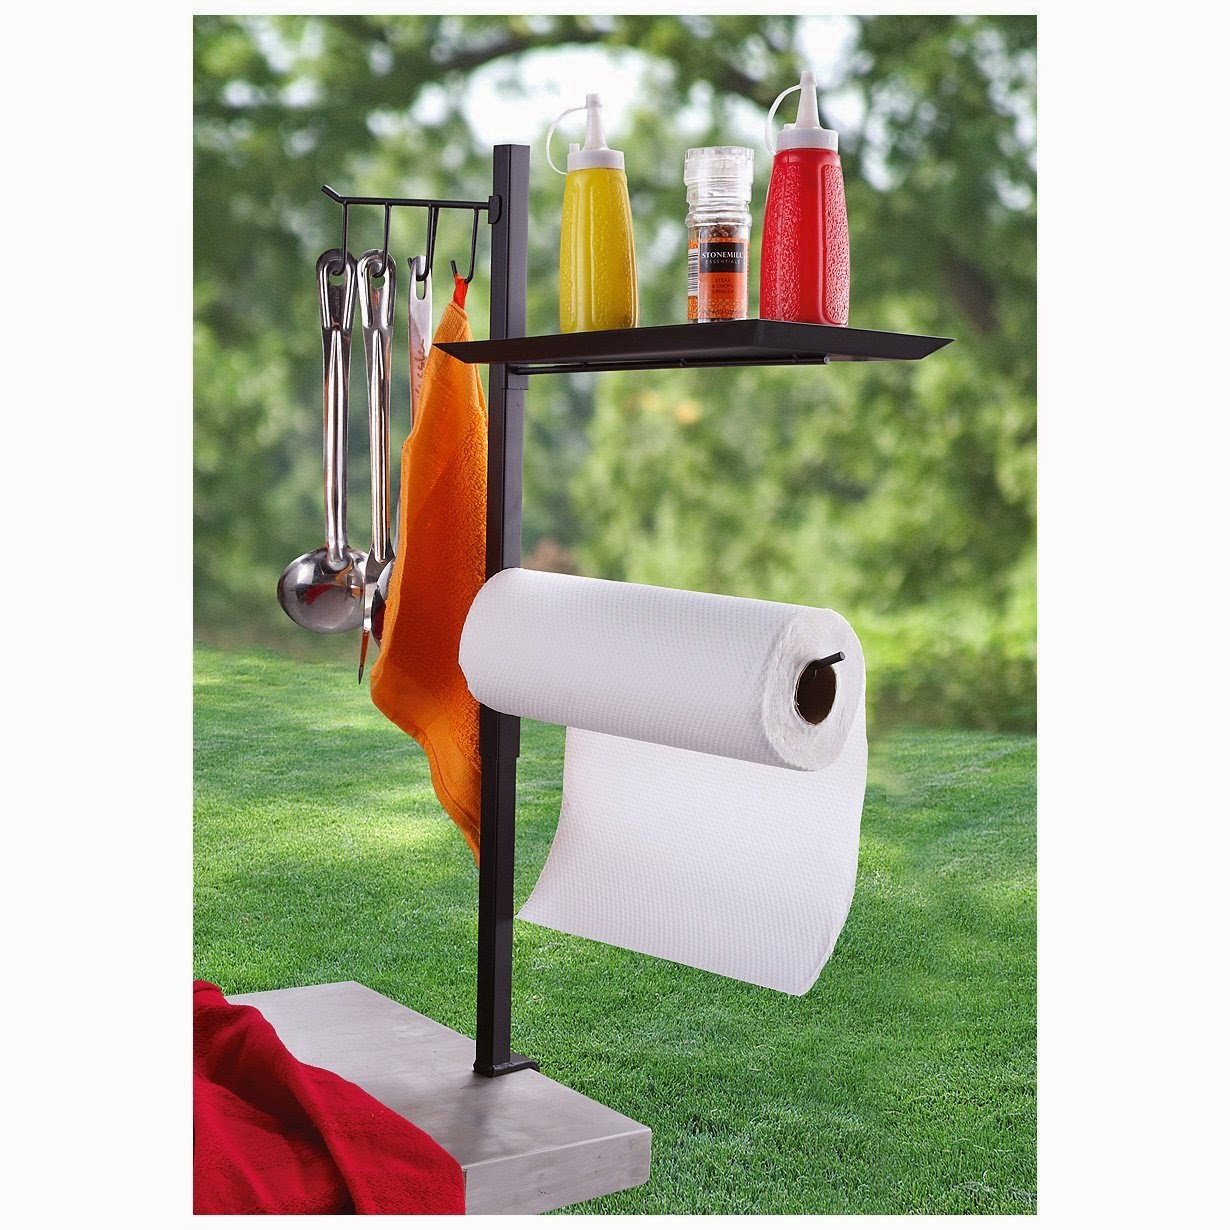 Organized Gift Idea for Father's Day - Barbecue Accessory Organizer :: OrganizingMadeFun.com